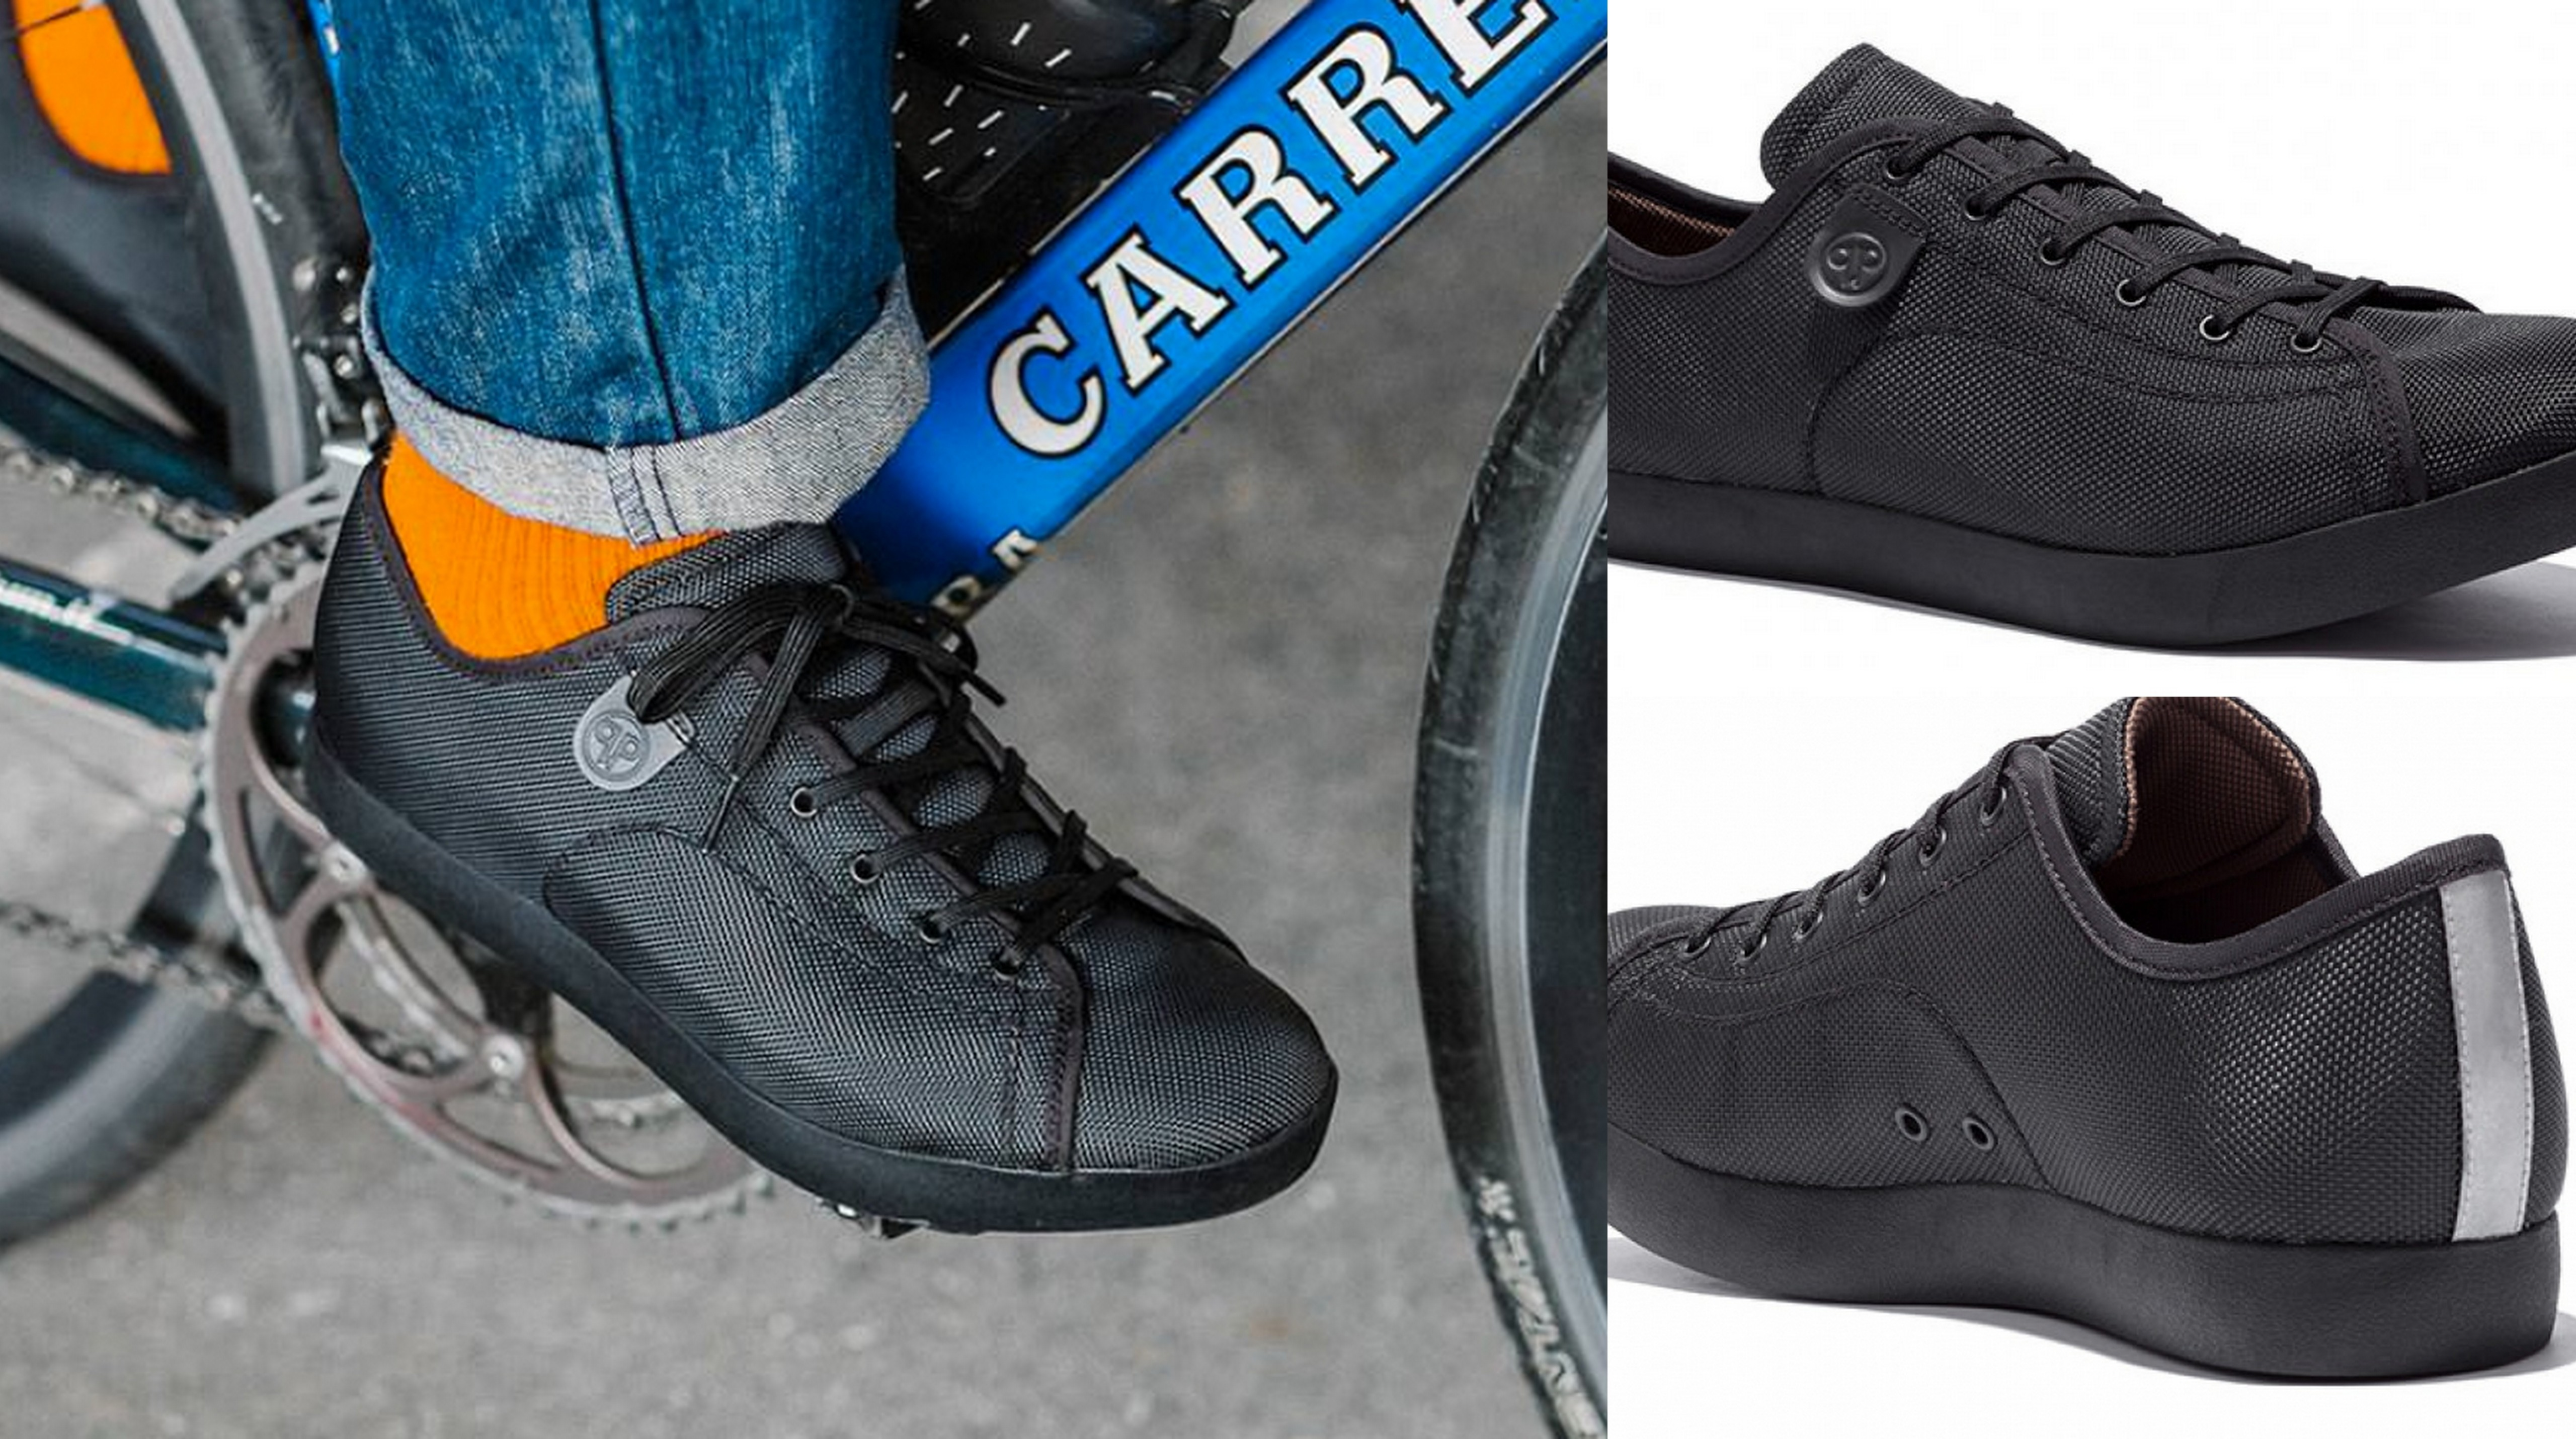 Stylish SPD Cycling Shoes You